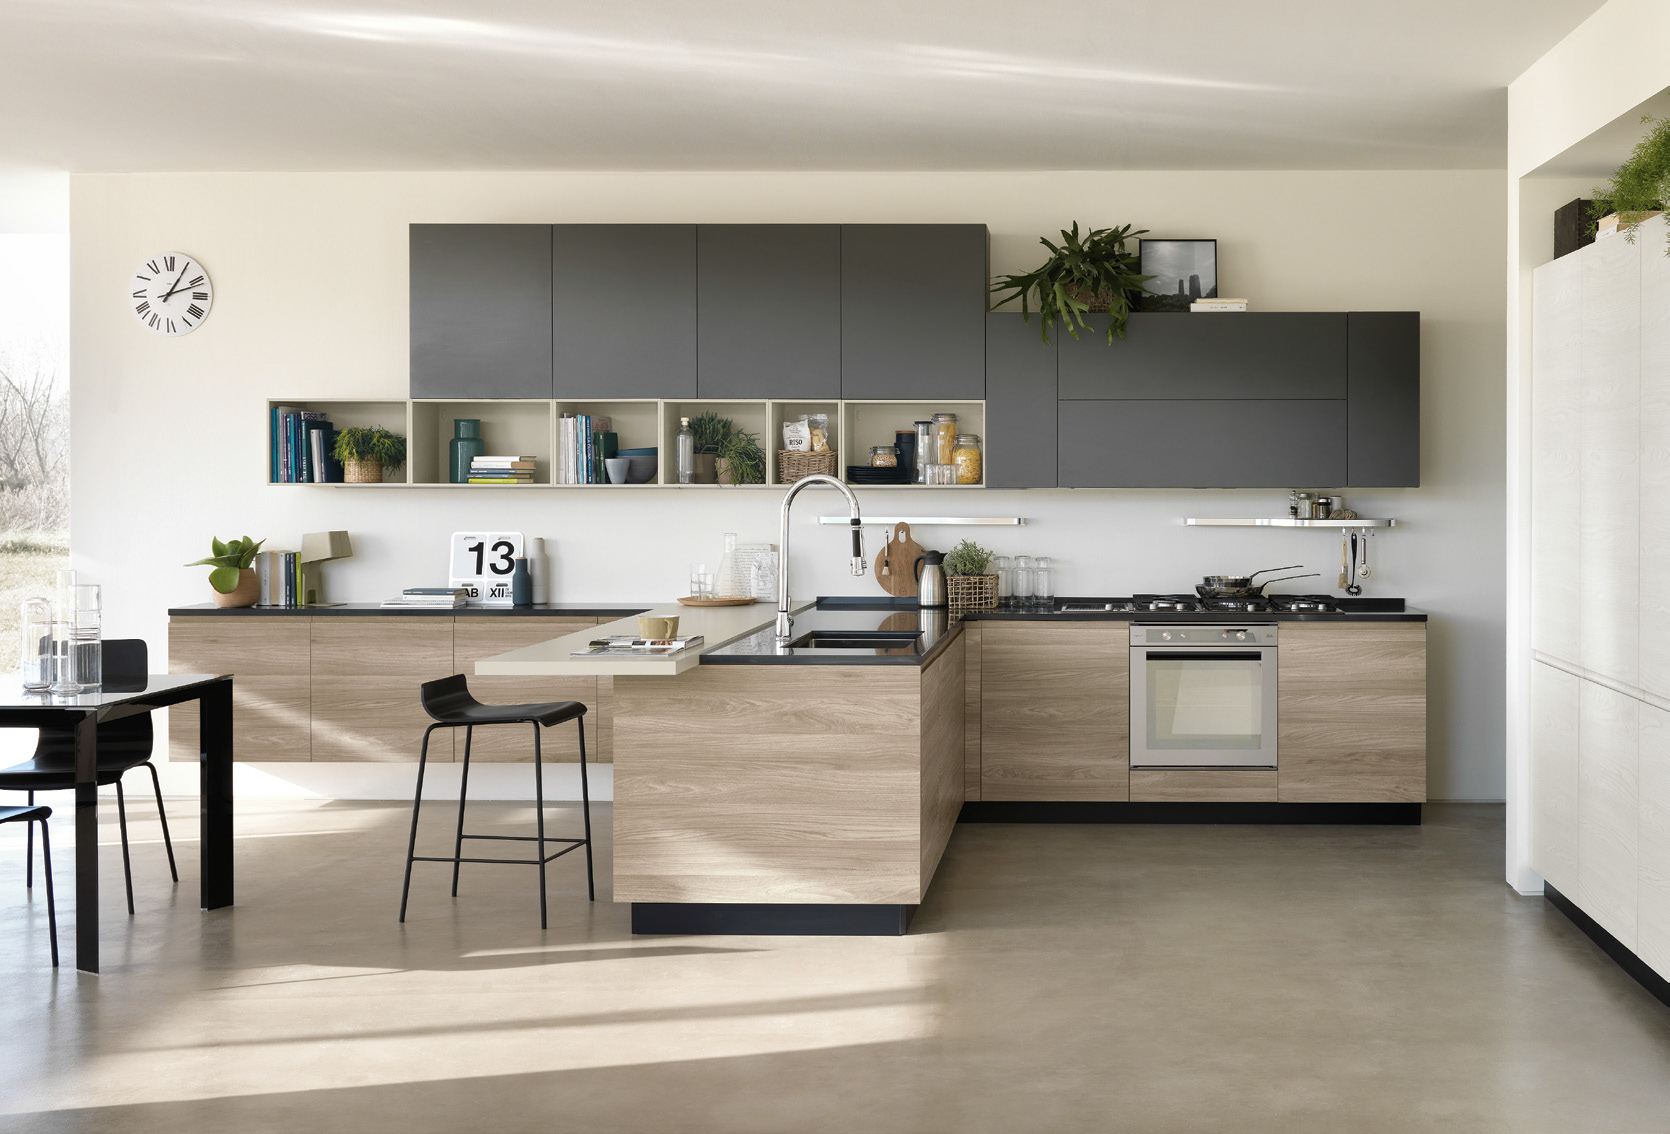 Best Scavolini Cucine Prezzo Photos - Ideas & Design 2017 ...